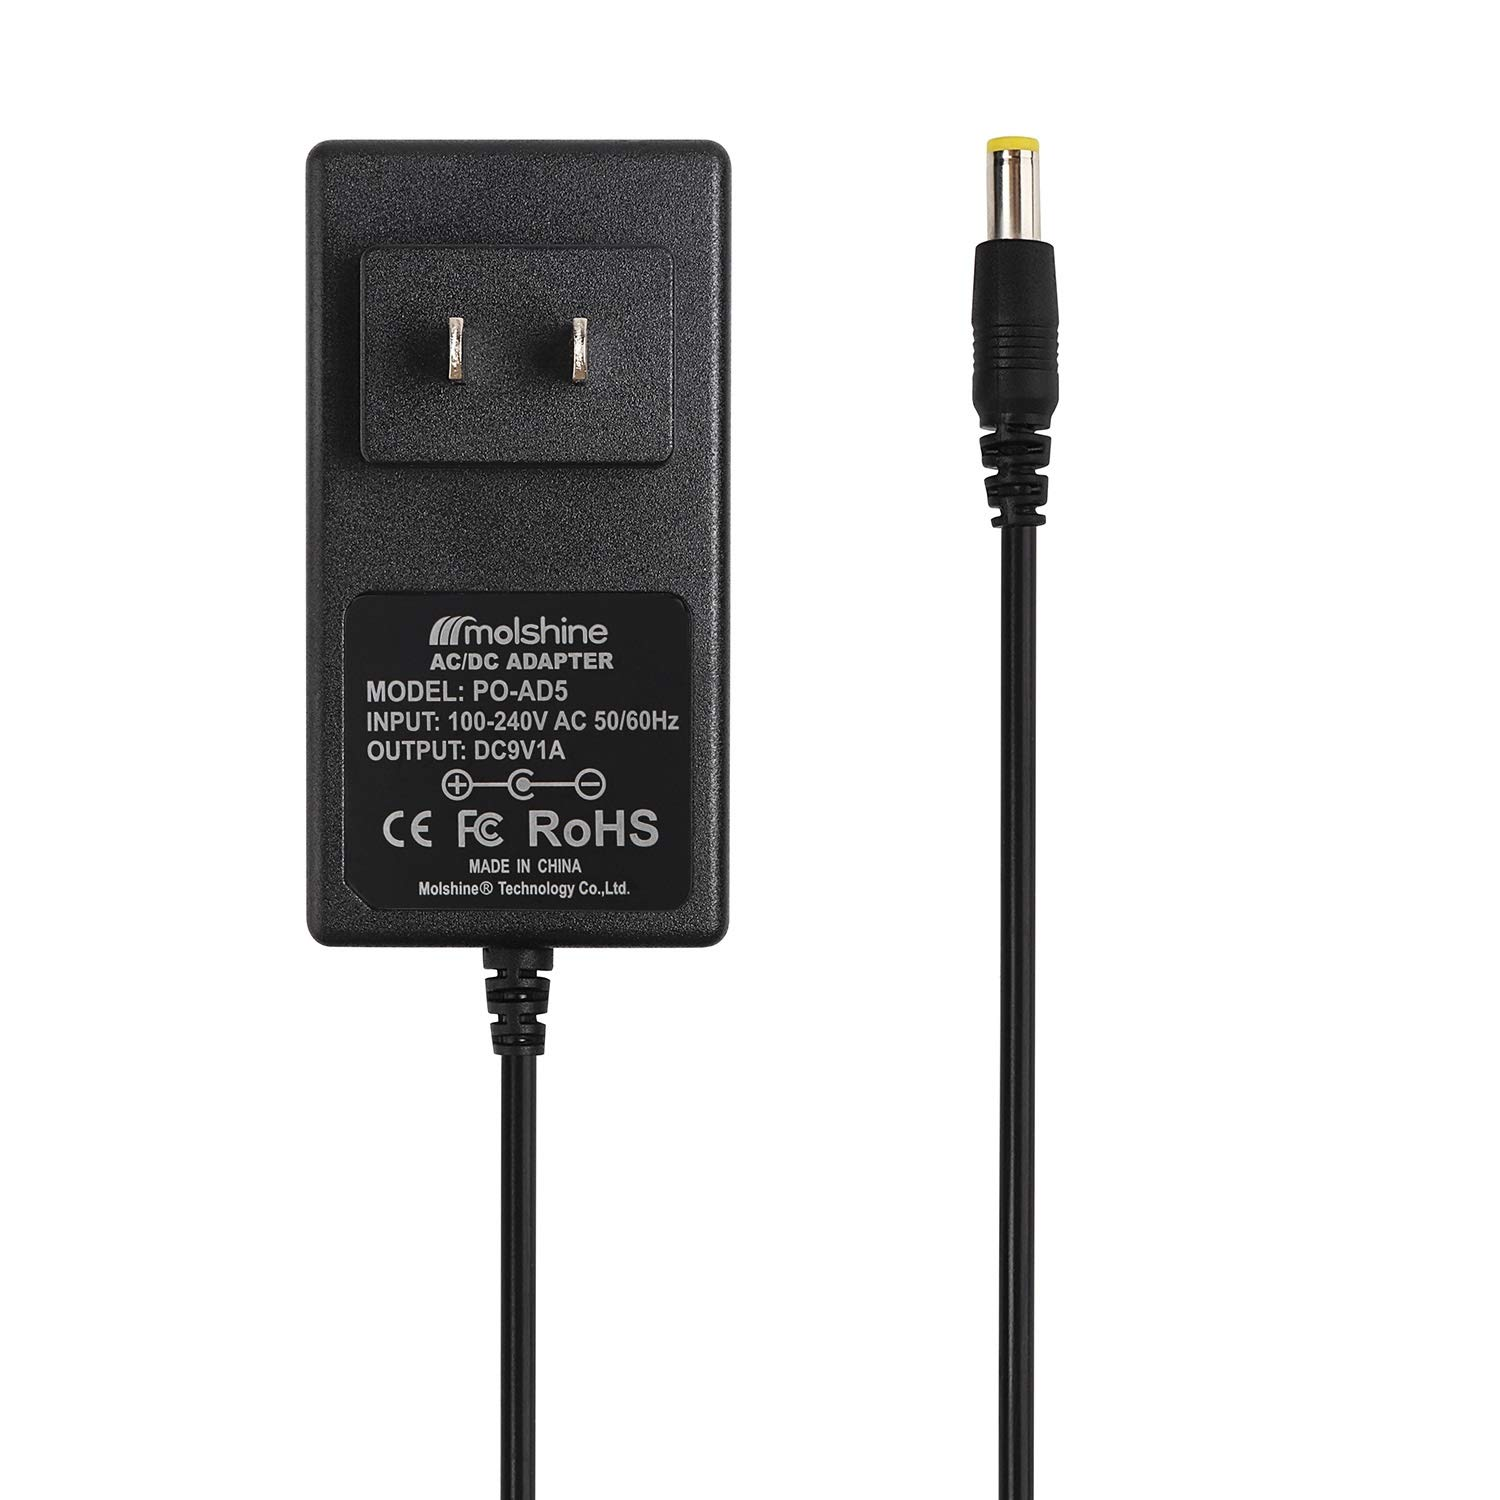 Molshine Compatible (9.8ft Cable) 9V AC DC Power Adapter AD5 Charger WTAD5 AD5 AD-5 AD5MR AD-5MR AD5UL AD-5UL AD-5EL AD-5MLE, Fit for Casio Piano Keyboard (CA CT CTK MA MT PRO LK WK HT Series & etc.)